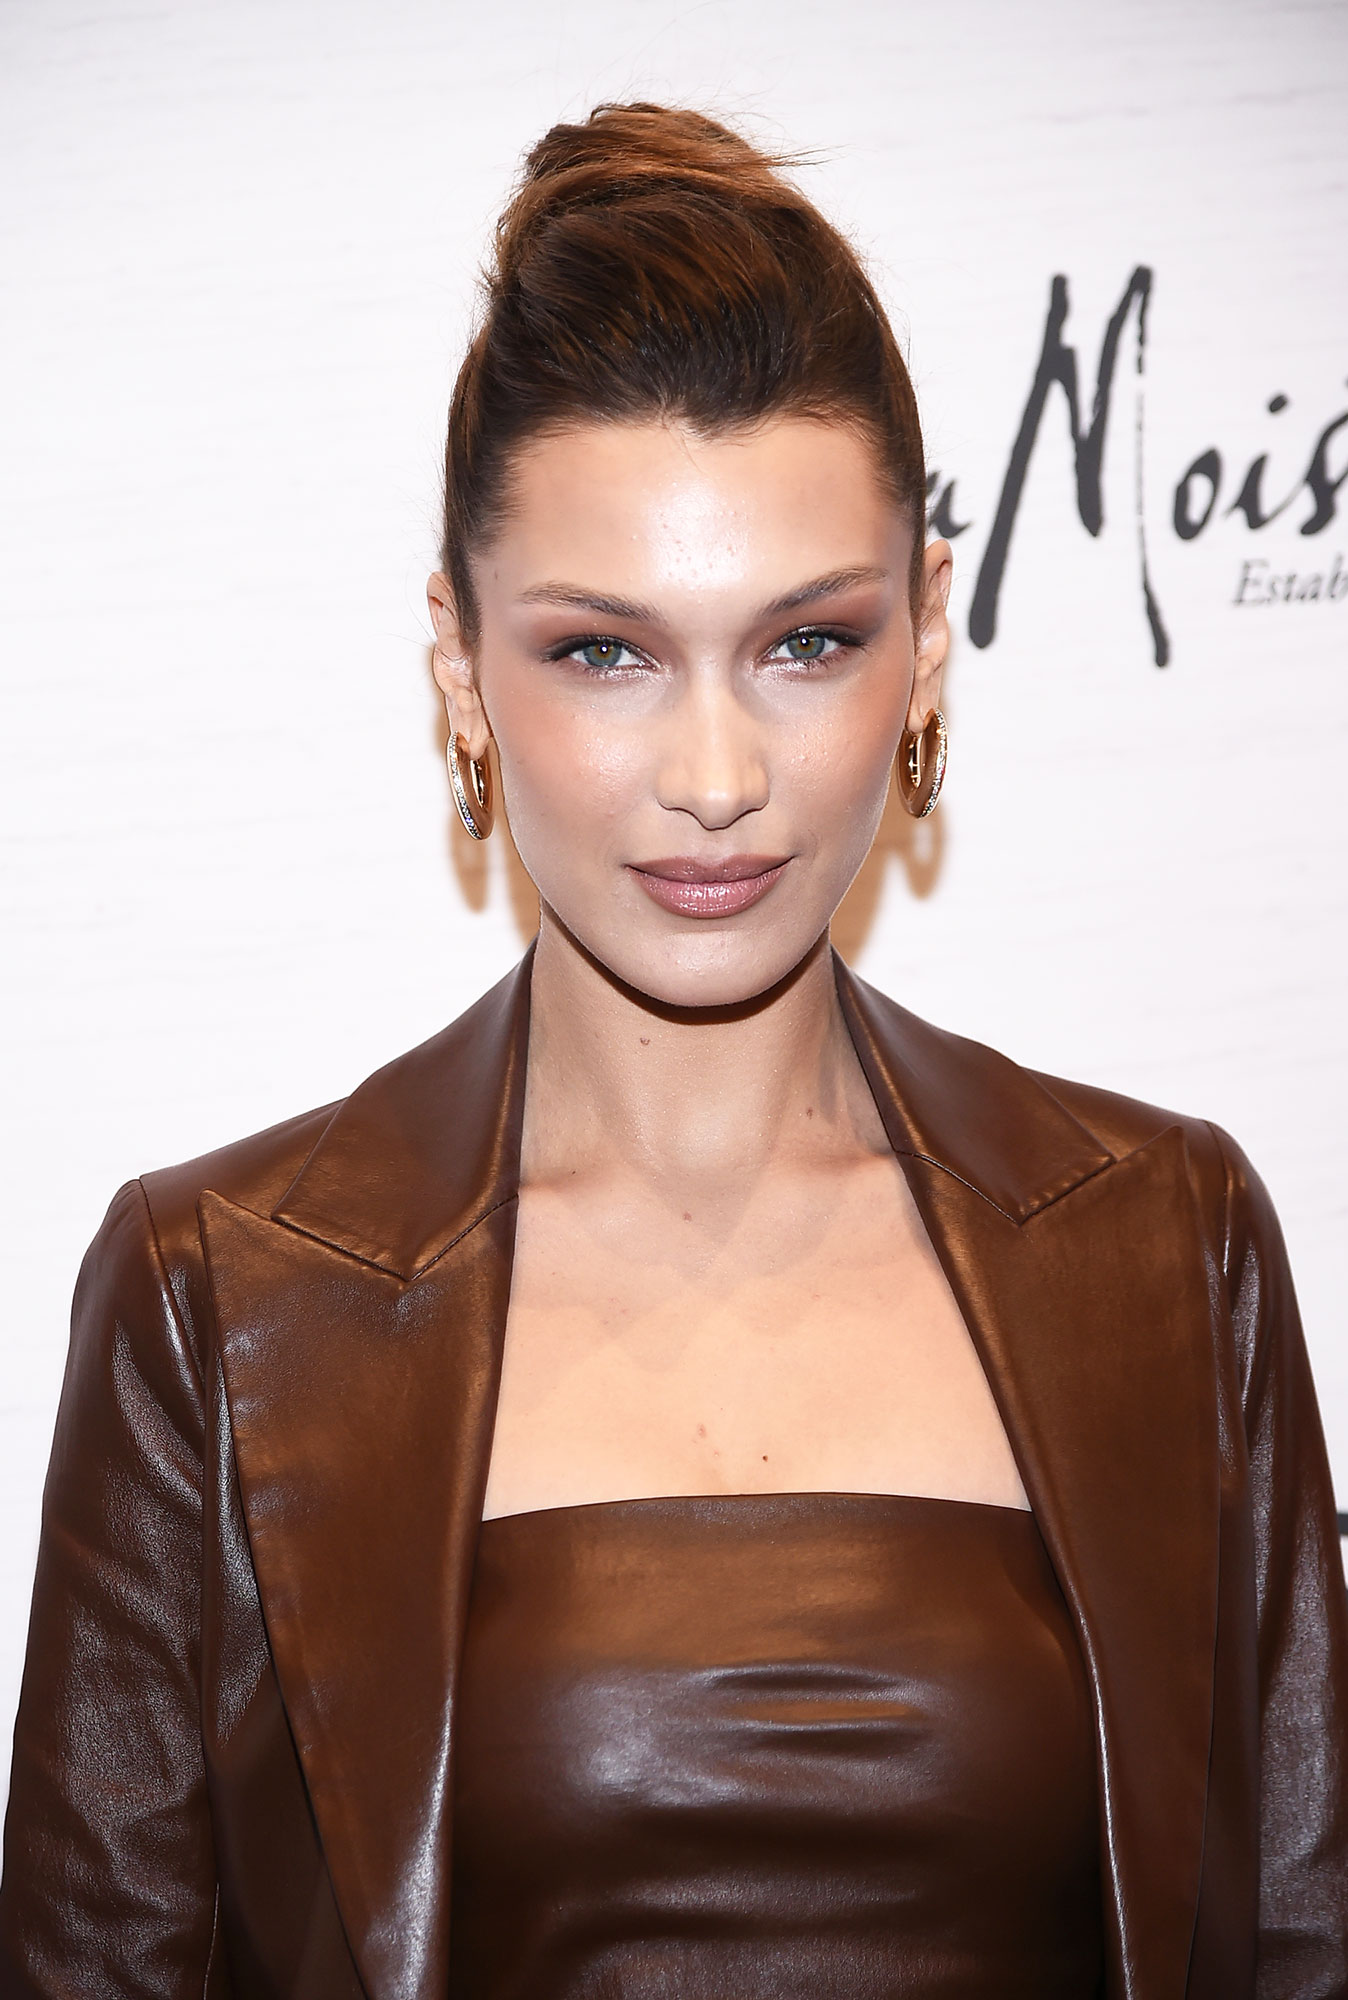 Bella Hadid's Undone Ballerina Bun - What better way to beat the desert heat than with a simply stylish top knot à la the model at the Variety's Power of Women luncheon on Friday, April 5? For an undone effect, celeb hairstylist Jennifer Yepez used the texturizing Playa New Day Mist and Soft Volume Powder.